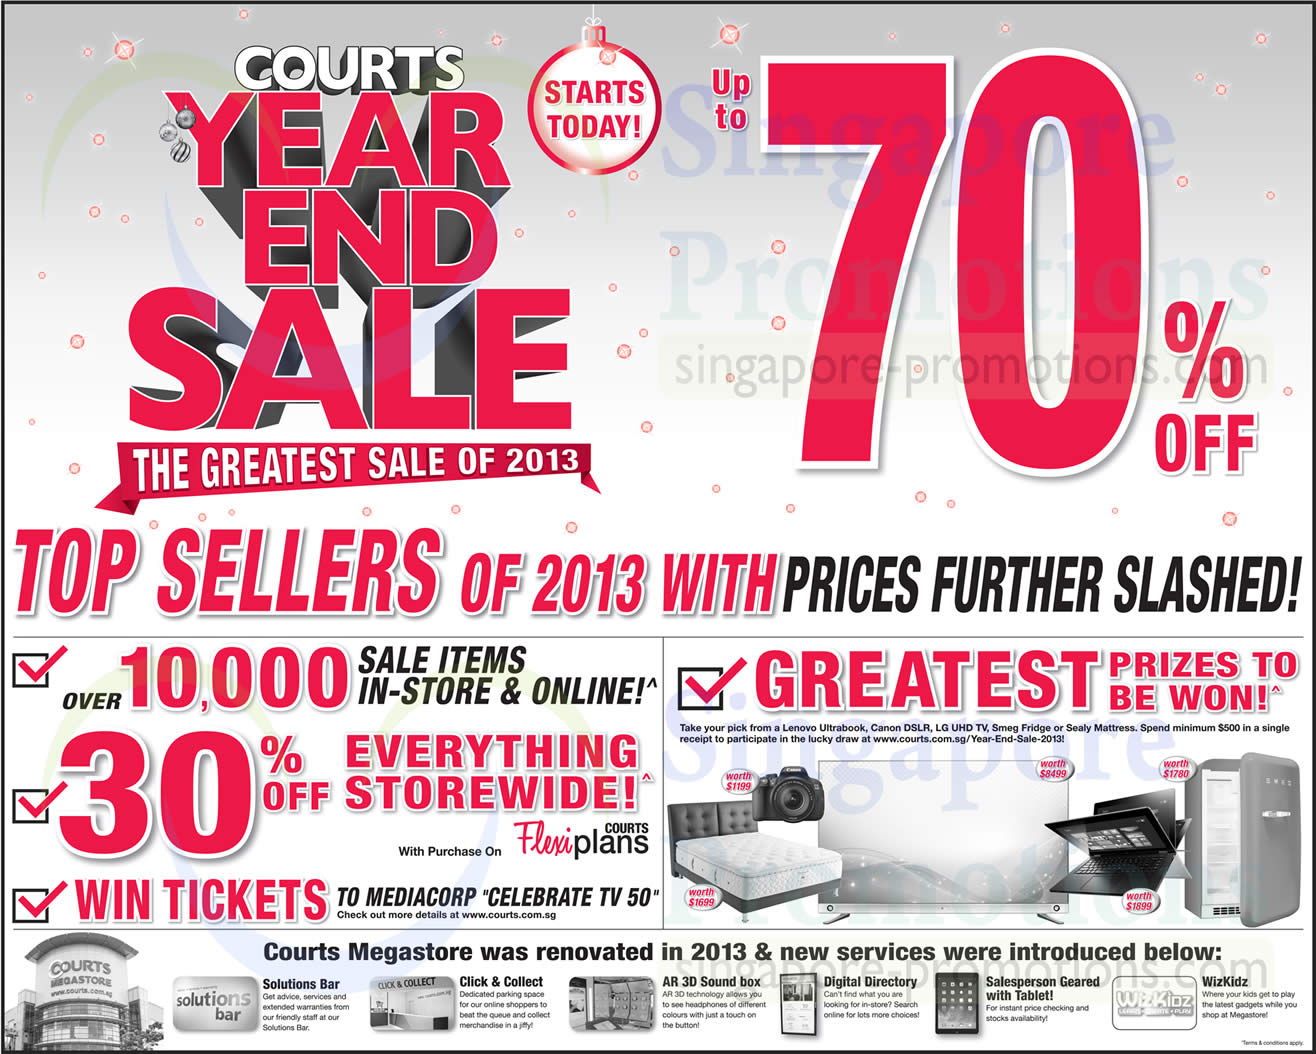 Courts year end sale. The greatest sale of 2013. 70% off. and Top sellers of 2013 with prices further slashed.